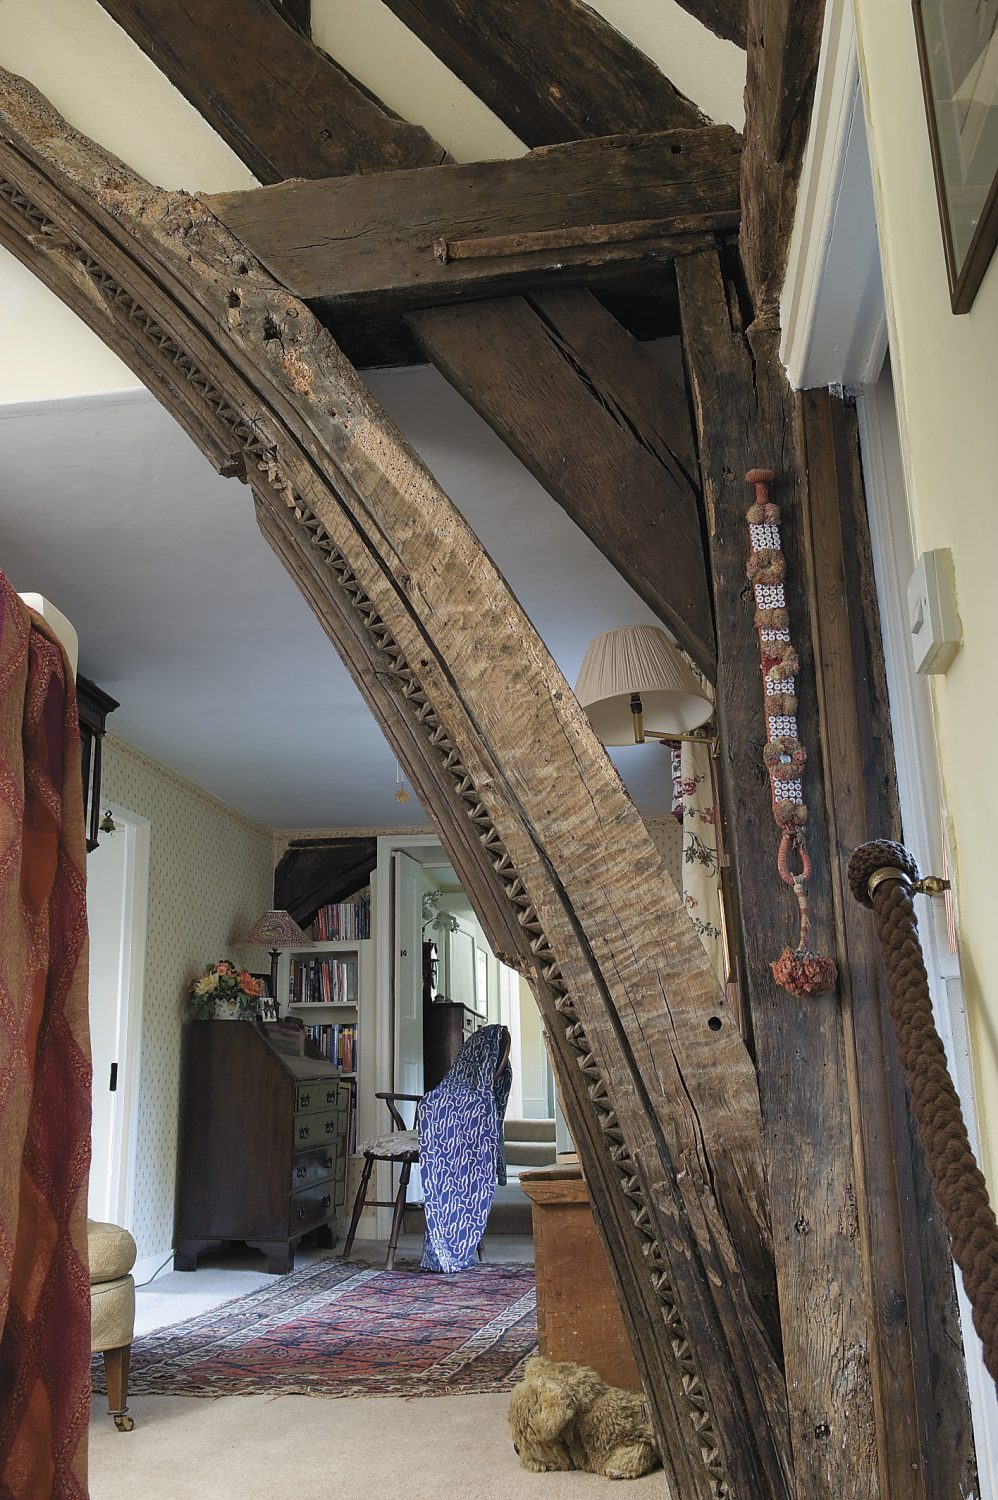 part of the decorated arched oak beam uncovered 30 years ago